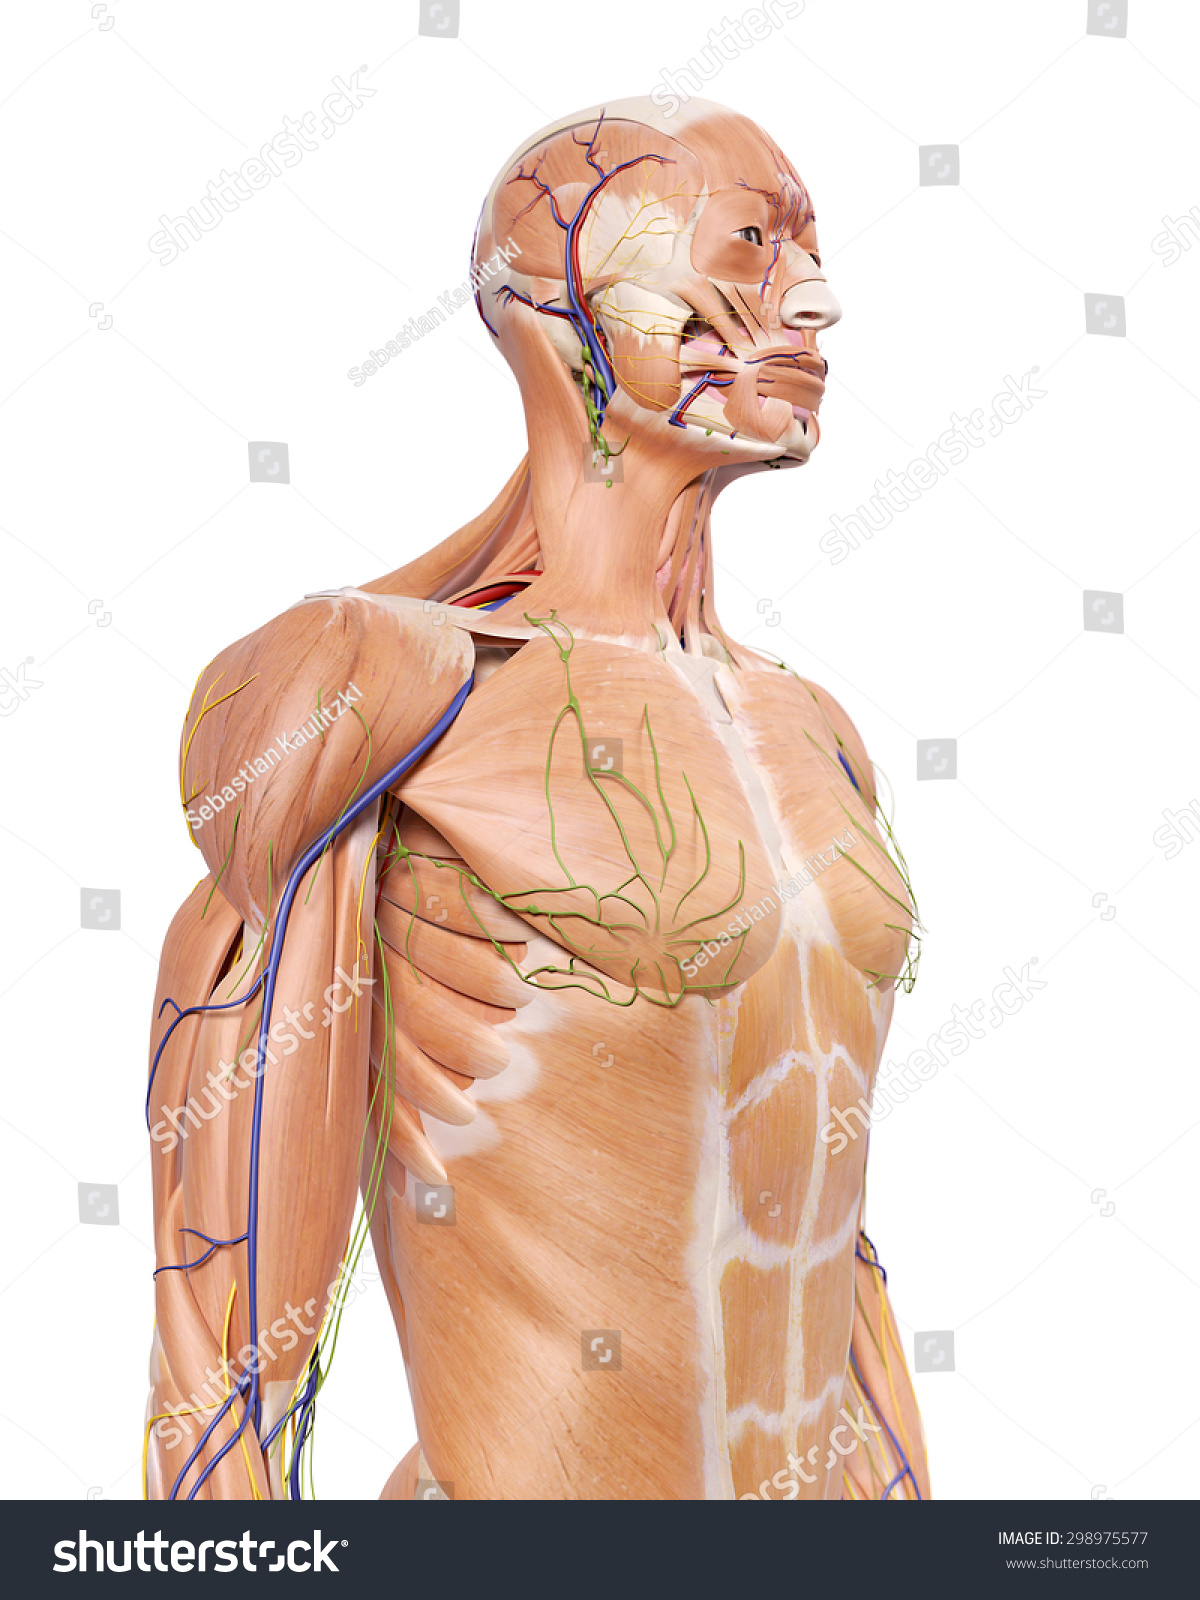 Medically Accurate Illustration Upper Body Anatomy Stock